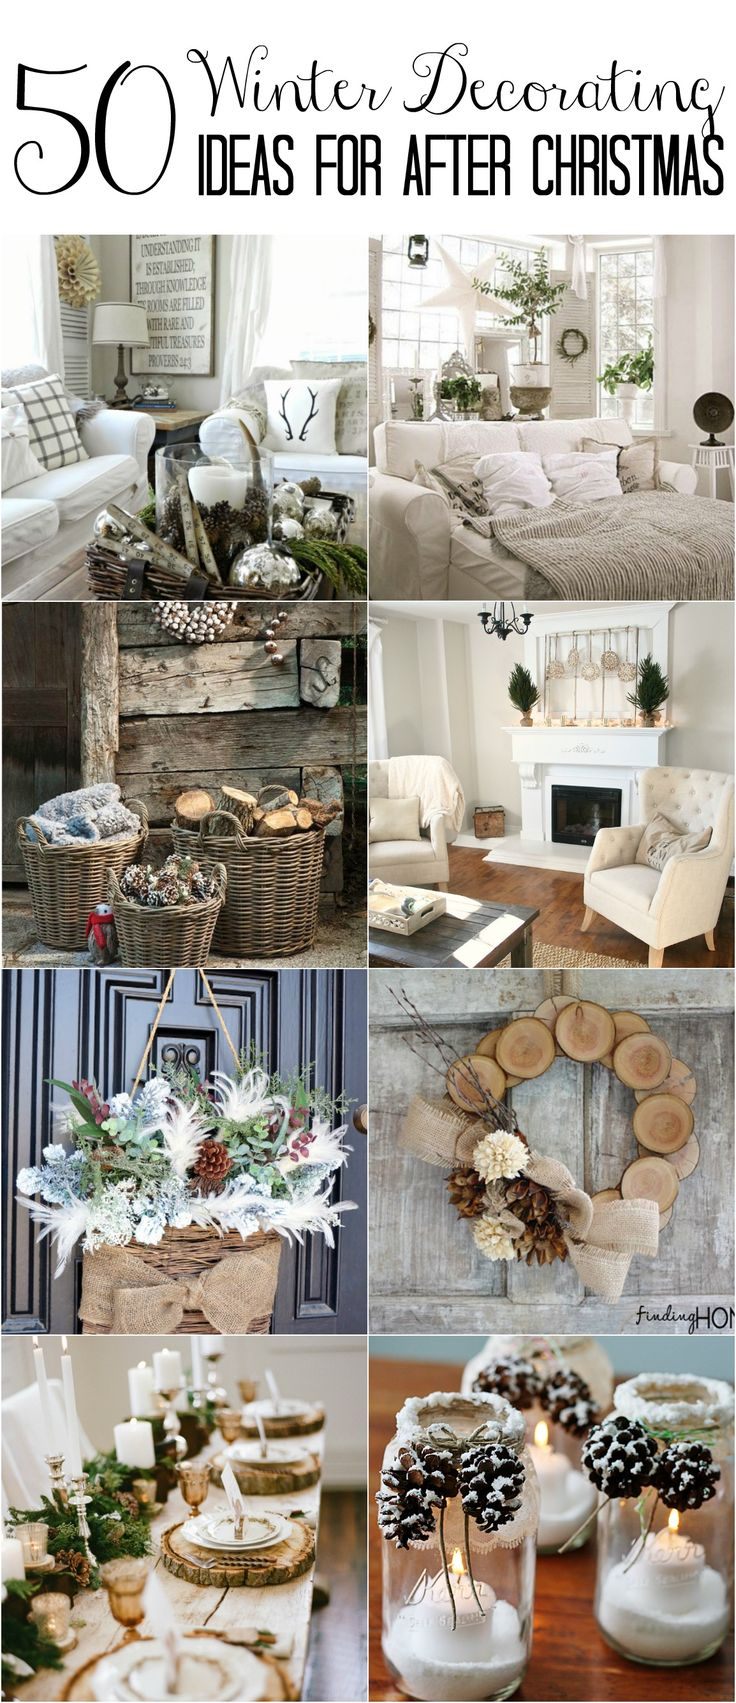 50 Winter Decorating Ideas …